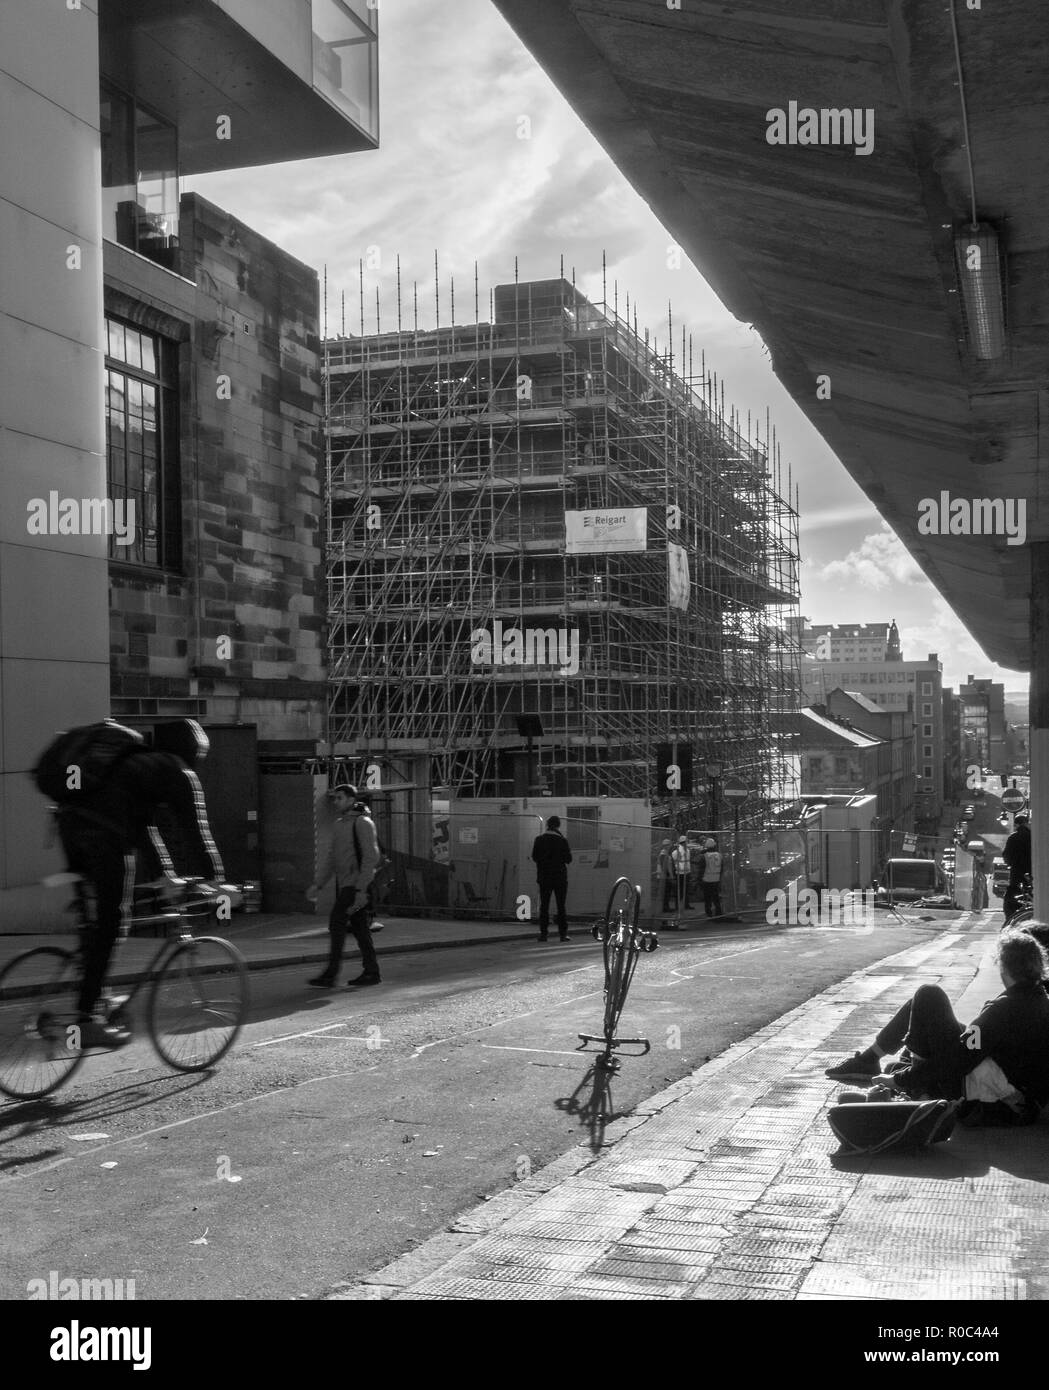 GLASGOW, SCOTLAND - NOVEMBER 2nd 2018: A black and white photograph of a students going to class while workers work on the site of Glasgow School of A - Stock Image